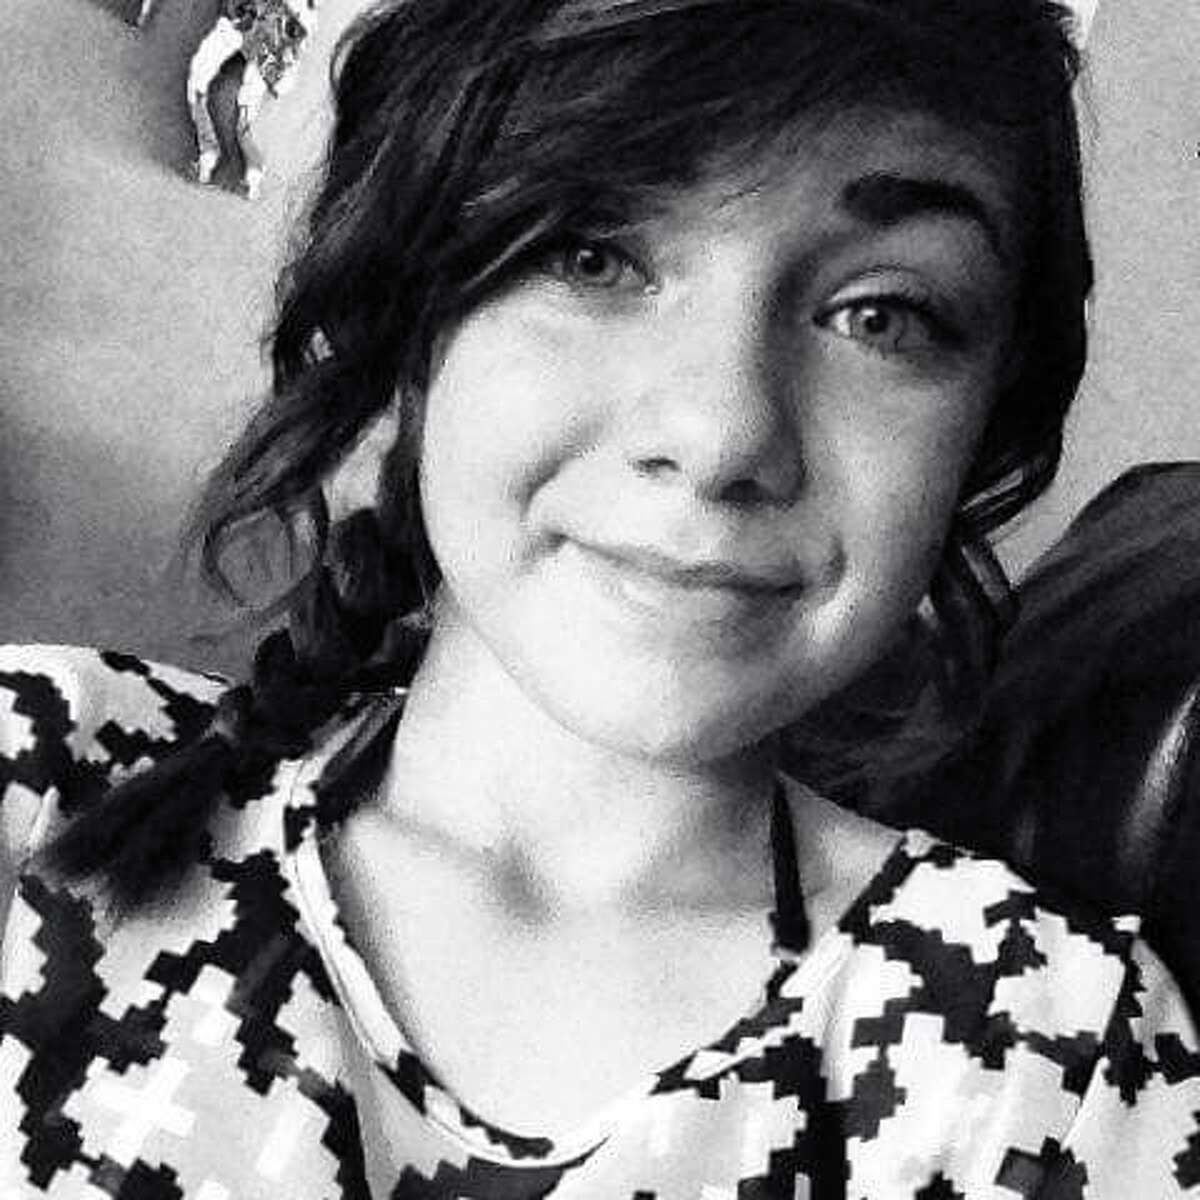 13-year-old Lauren Landavazo was walking home from school Friday when she was fatally shot.